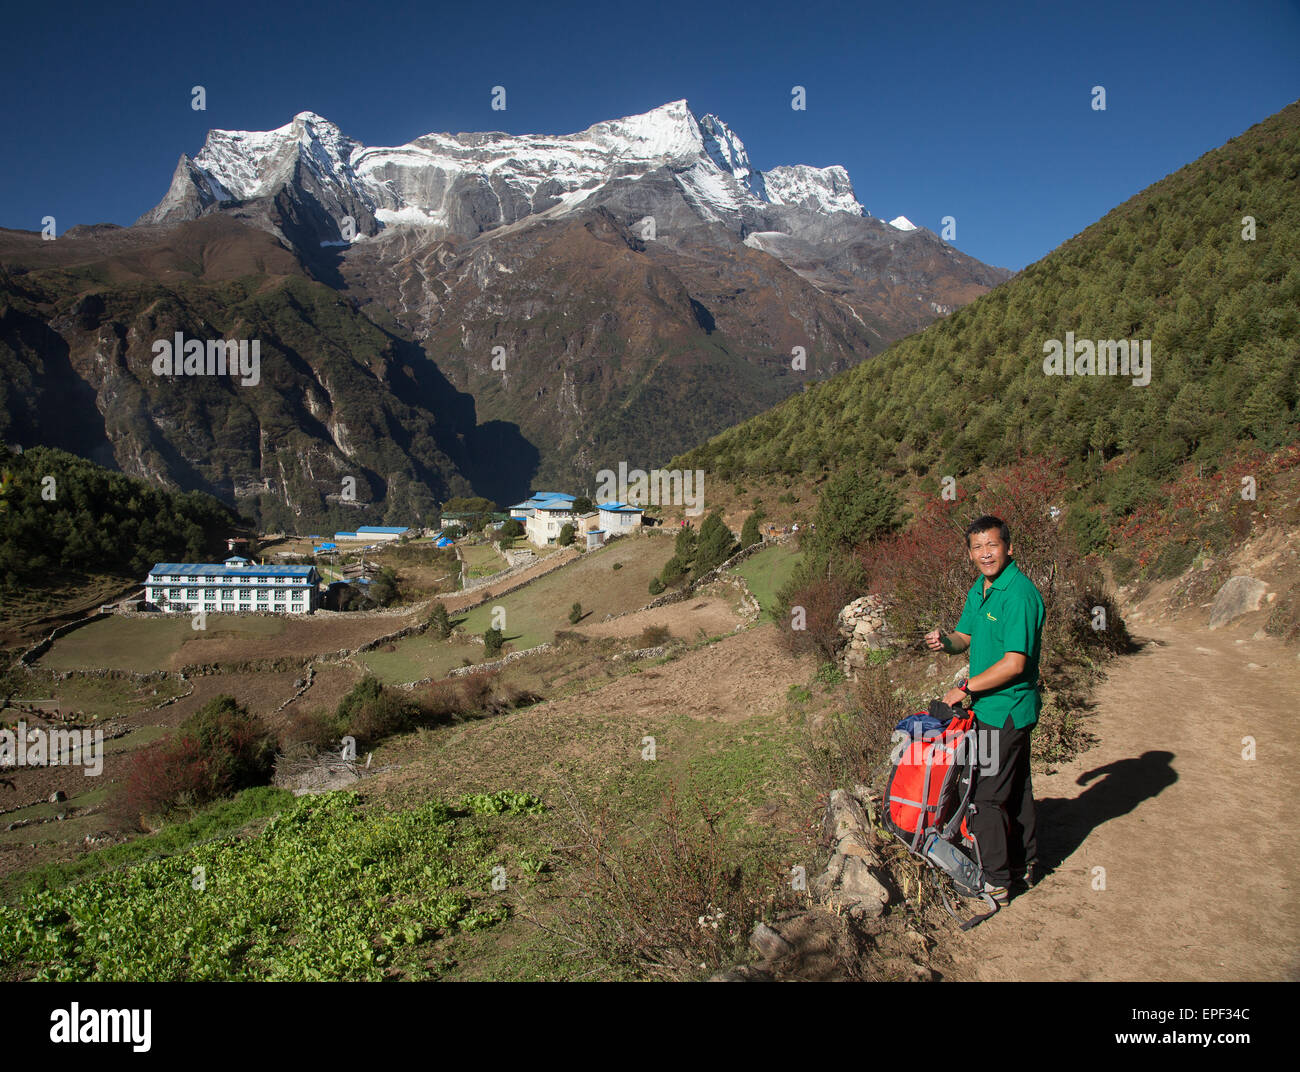 Dayula Sherpa has summited Everest 3 times and now leads treks in the Himalayas, this is the main path above Namche - Stock Image